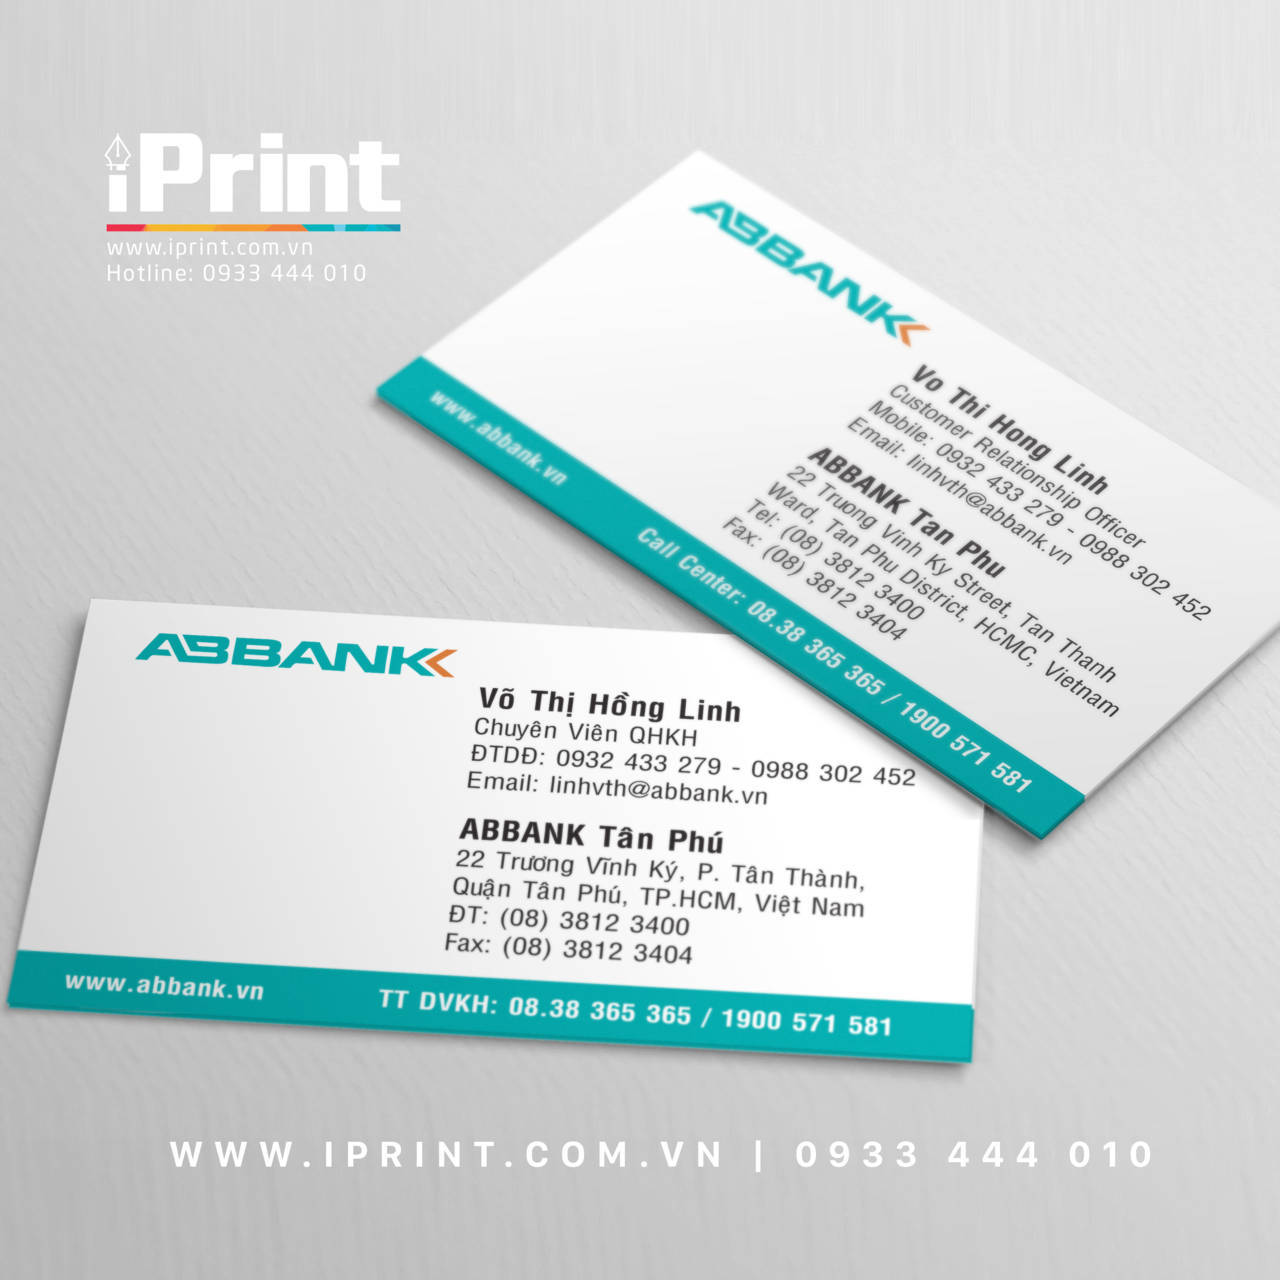 mau-name-card-ngan-hang-abbank www.iprint.com.vn